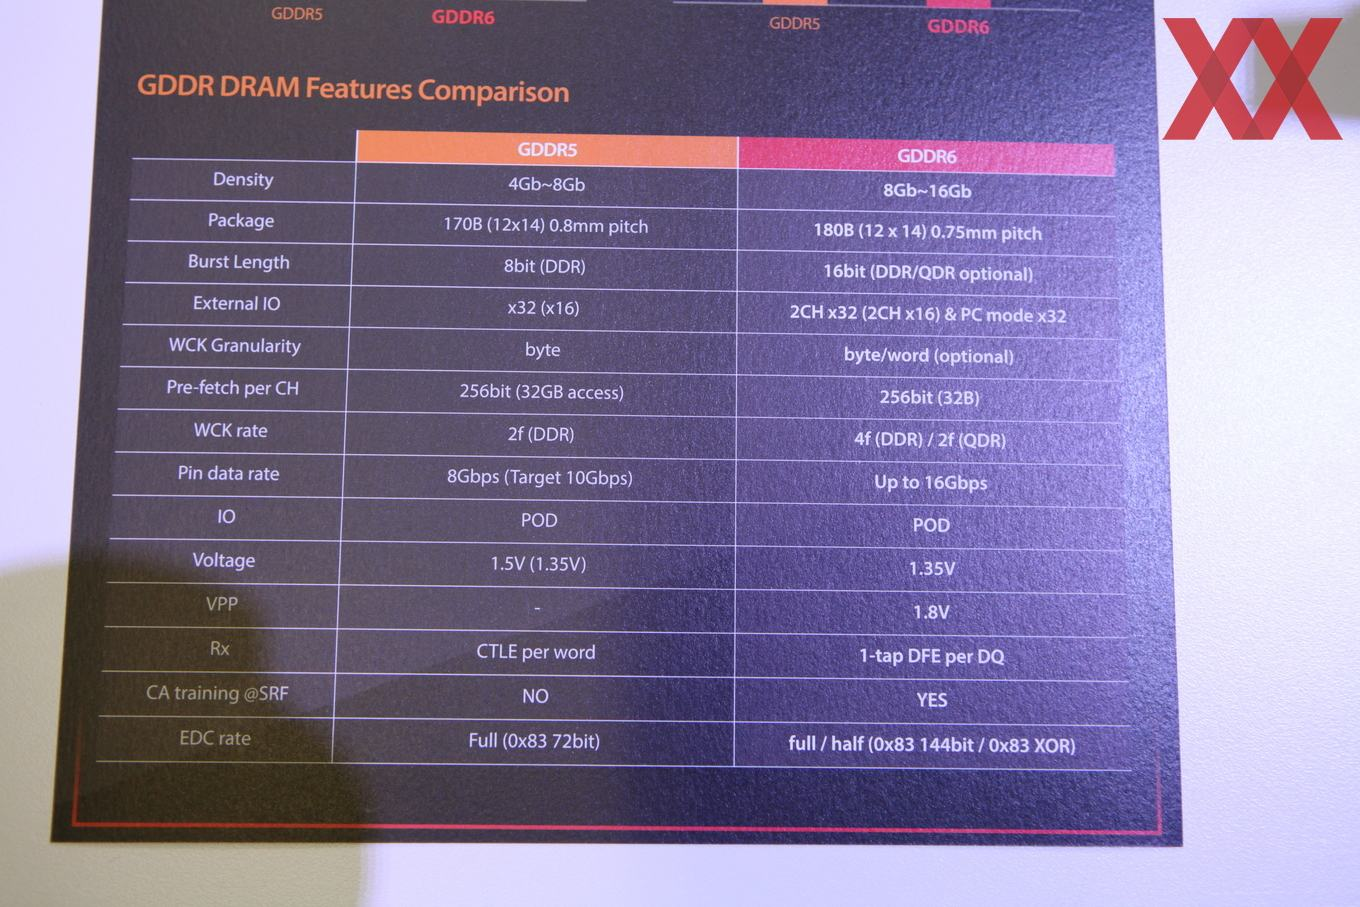 SK Hynix has shown their first GDDR6 wafers and specifications at GTC 2017